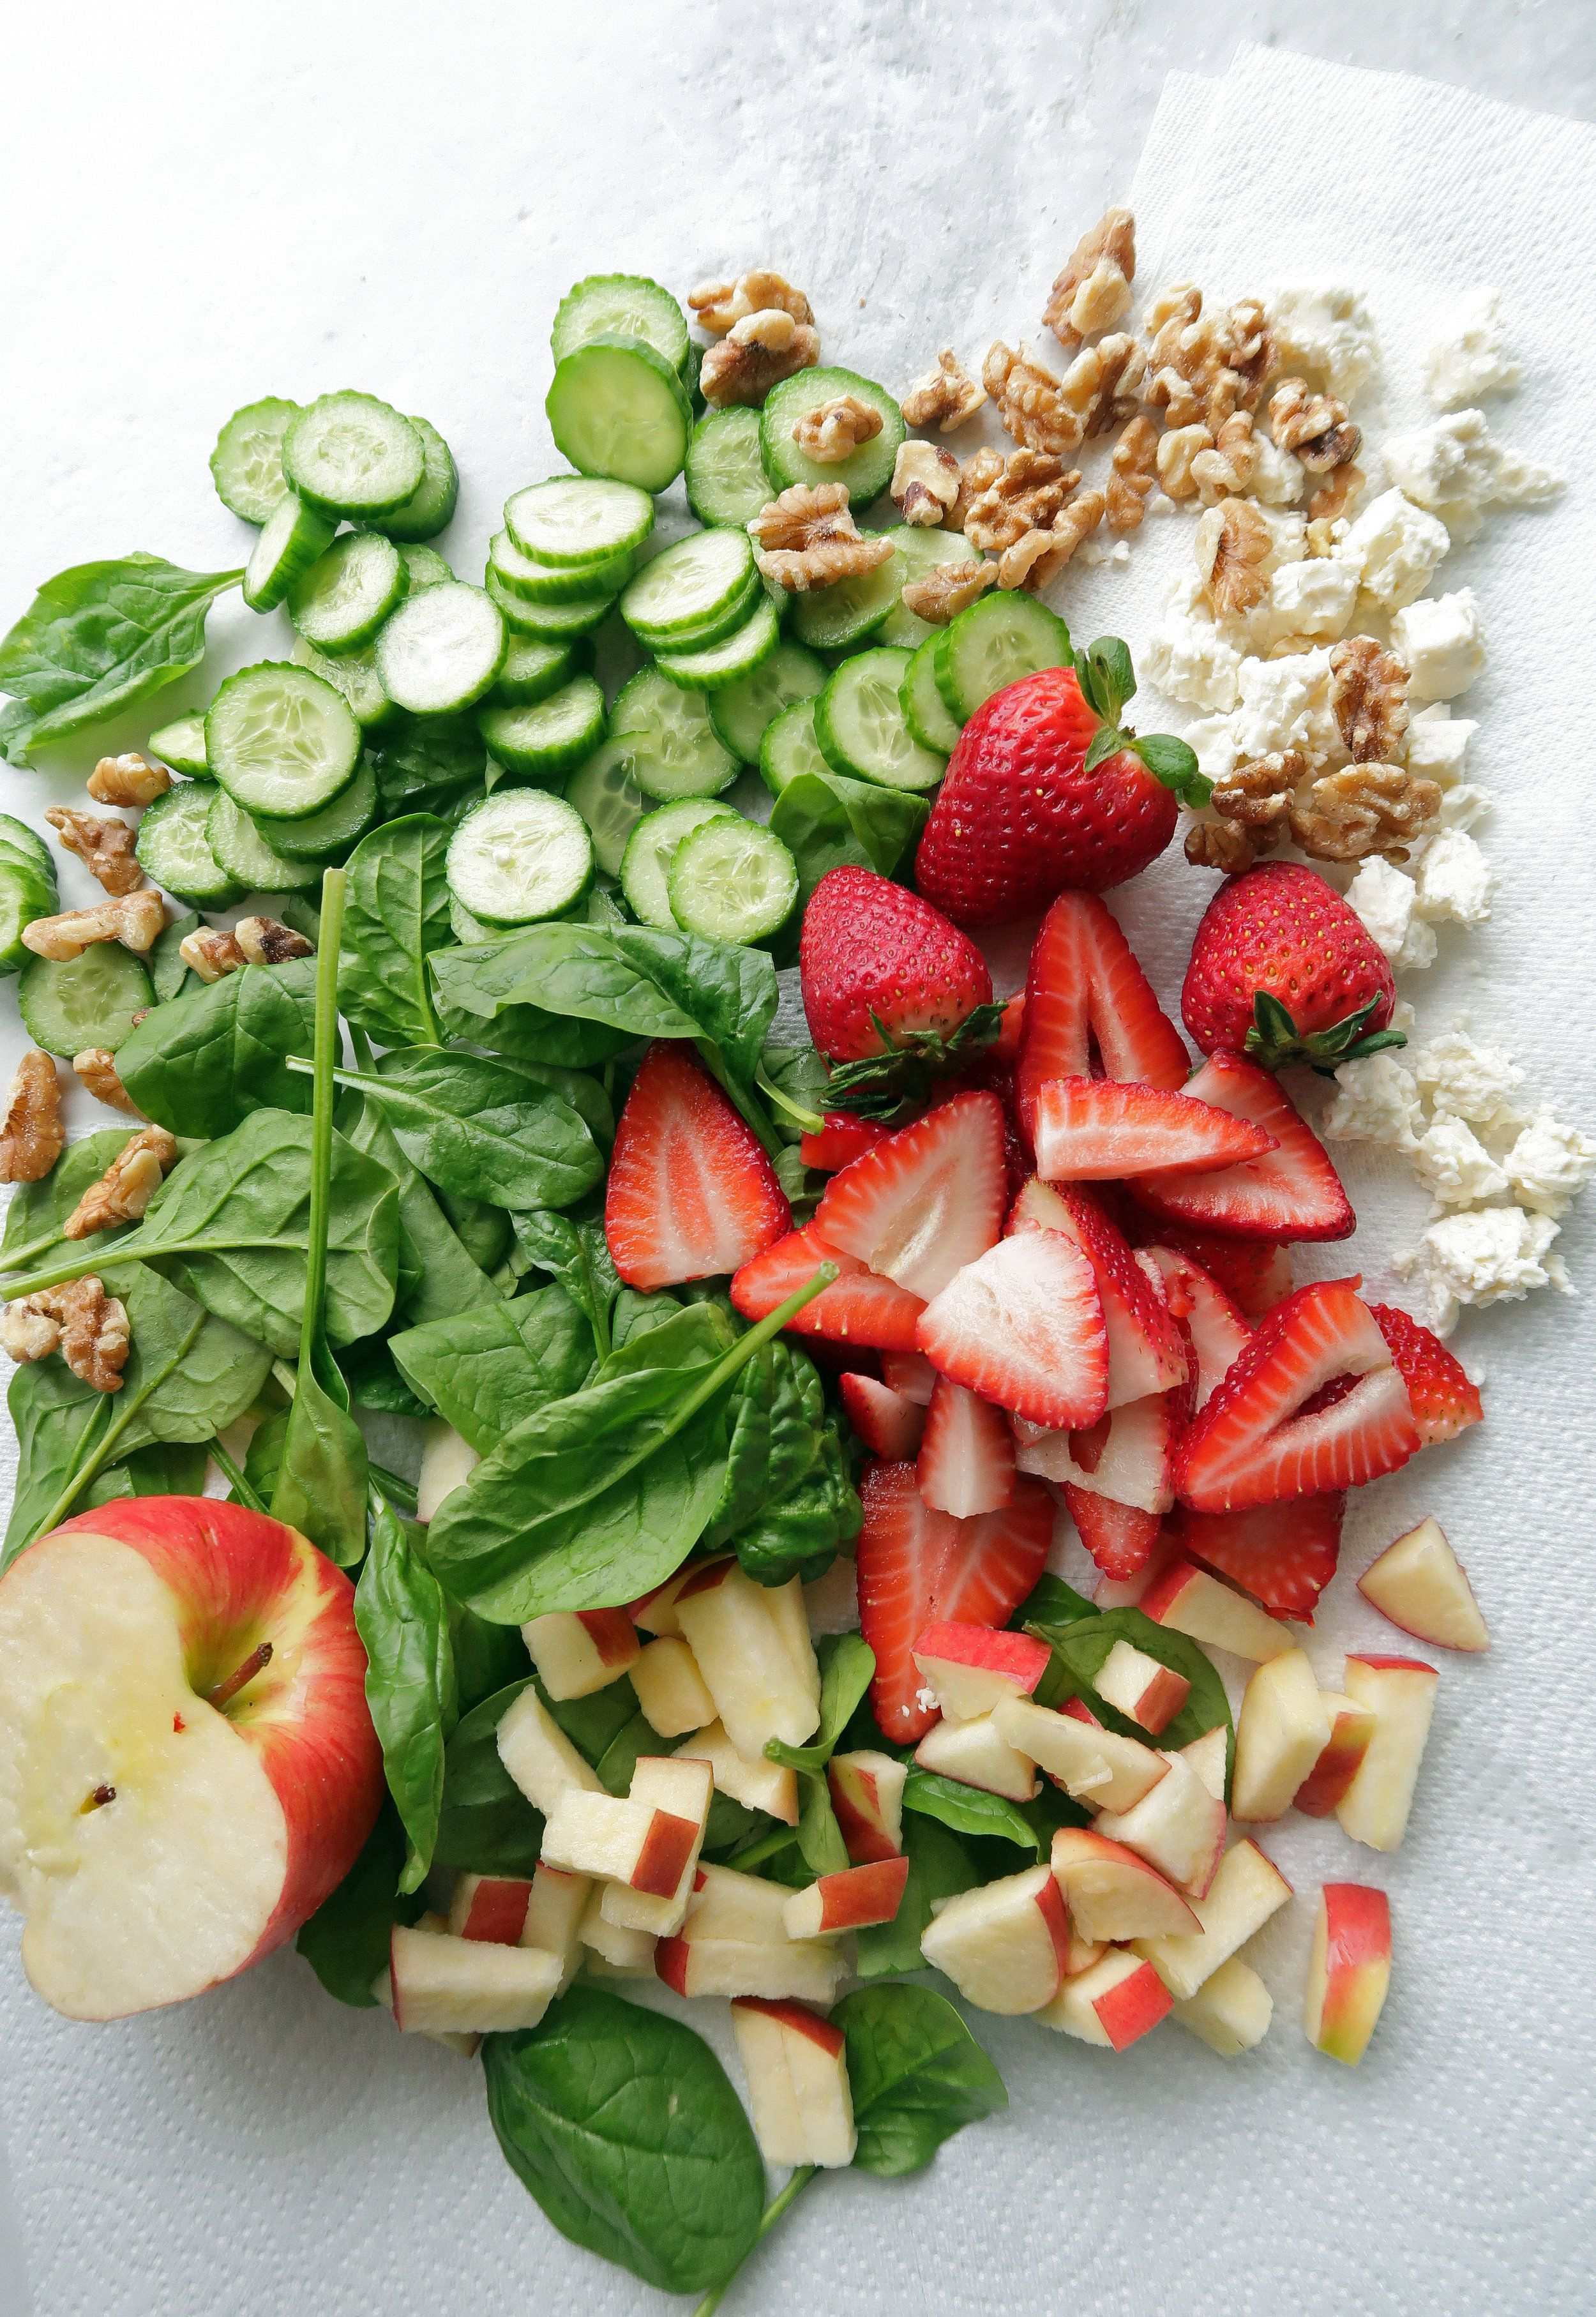 Strawberry Cucumber Spinach Salad with Apple Cider